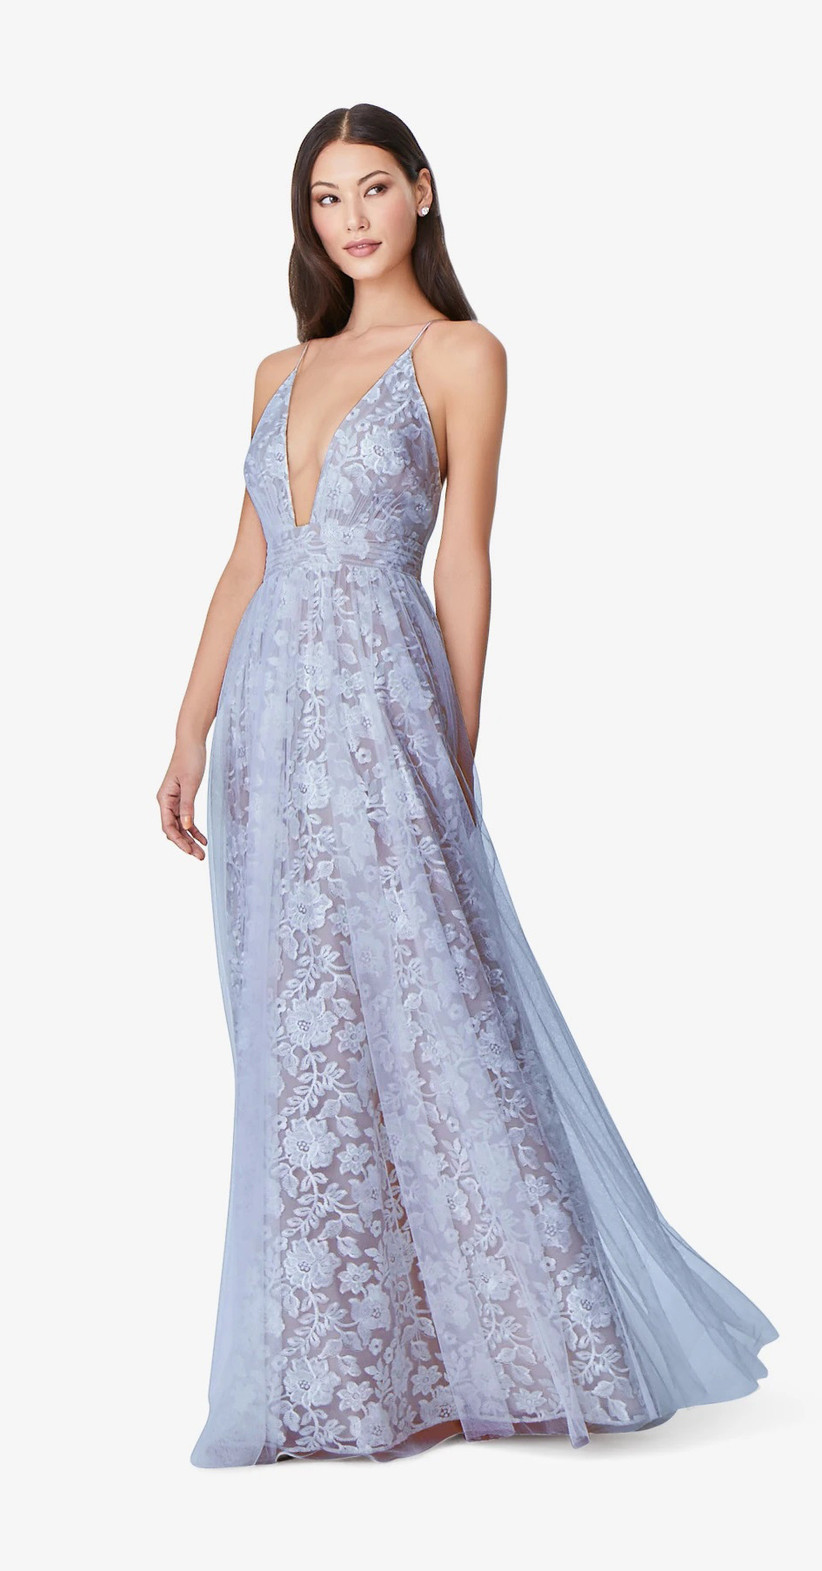 Model wearing deep V, floor-sweeping maxi with lacy blue floral print and sheer overlay